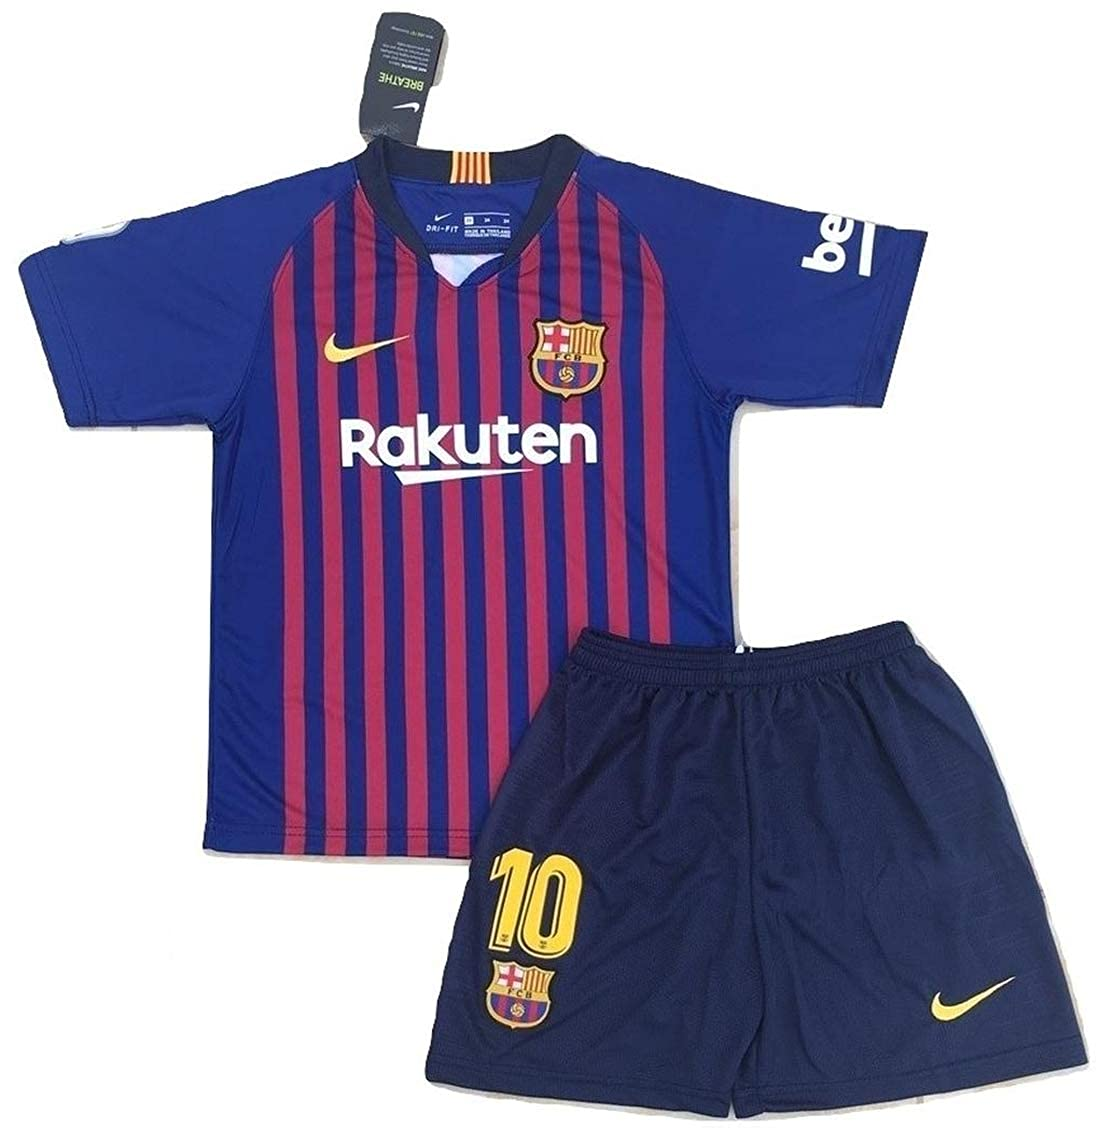 premium selection 3d05e bcb34 Messi #10 New 2018-2019 FC Barcelona Home Jersey & Shorts for Kids/Youth